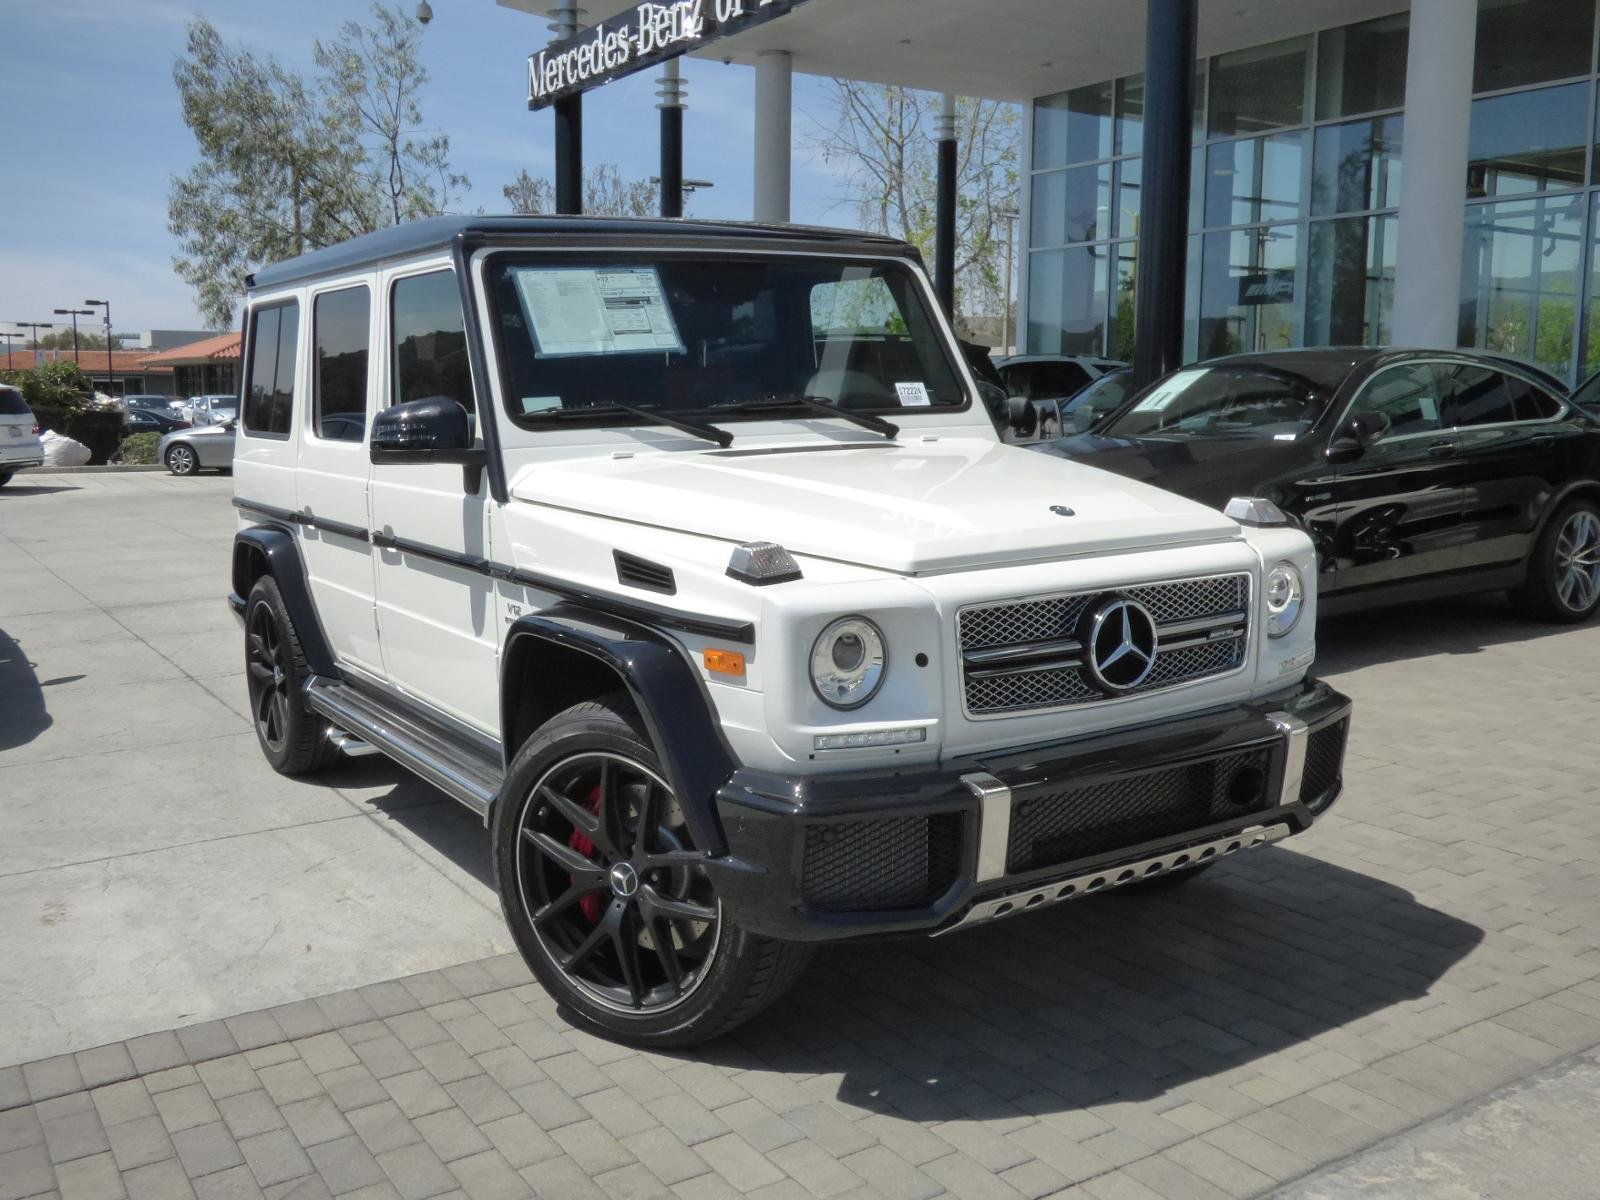 New 2017 Mercedes Benz G Class AMG G 65 SUV in Thousand Oaks